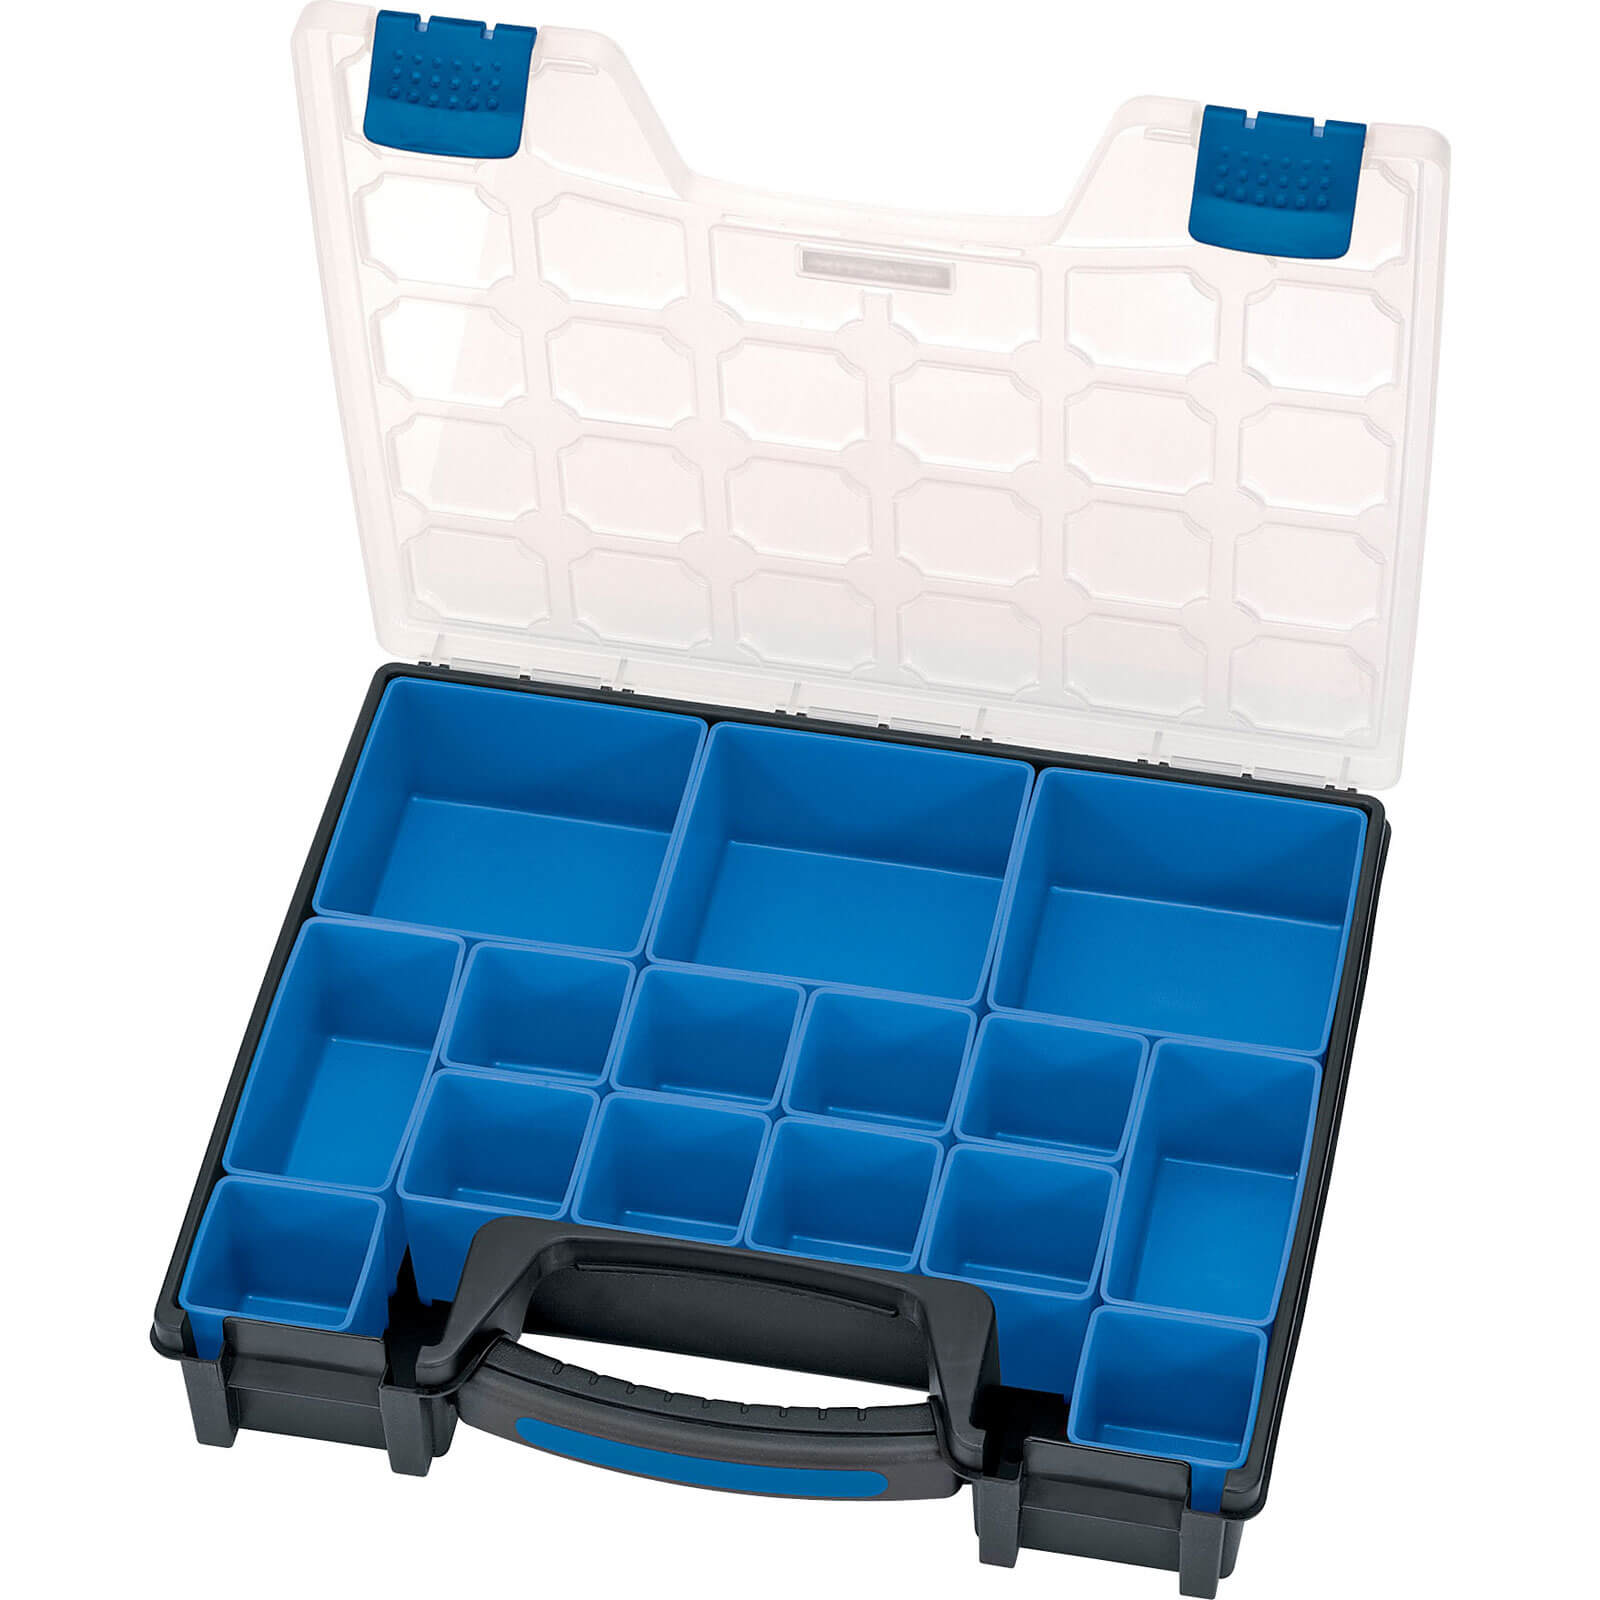 Image of Draper 15 Compartment Plastic Organiser